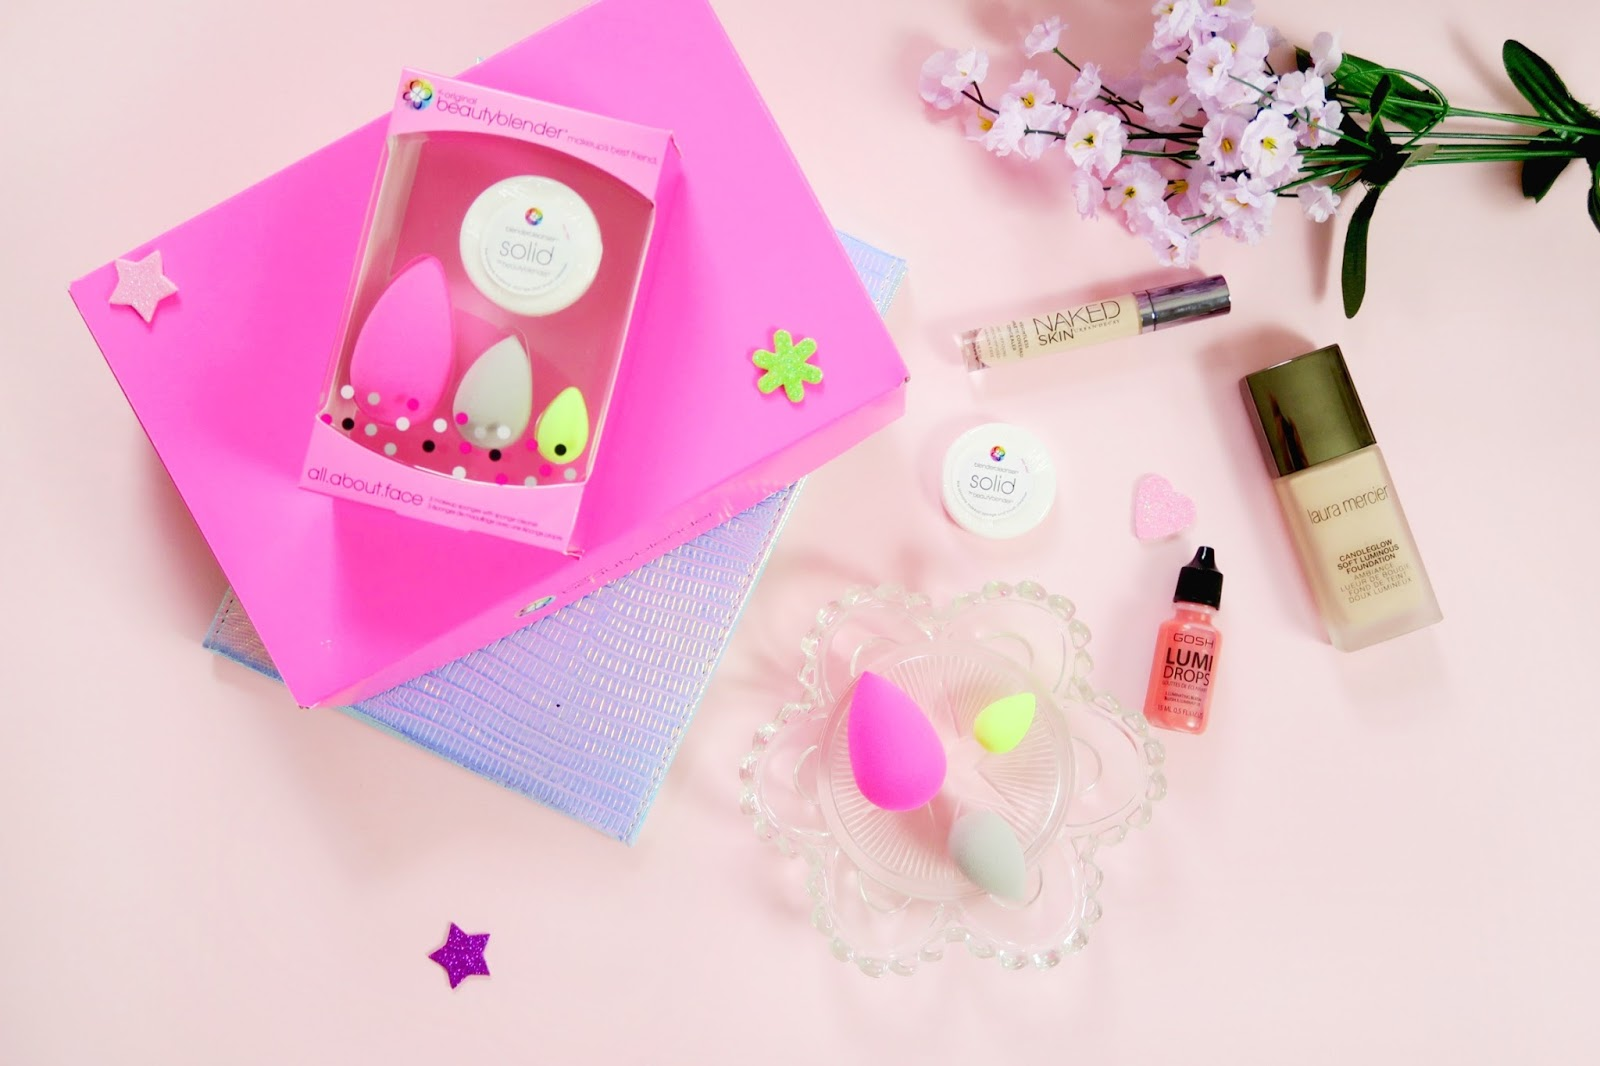 an image of the all.about.face by beautyblender kit